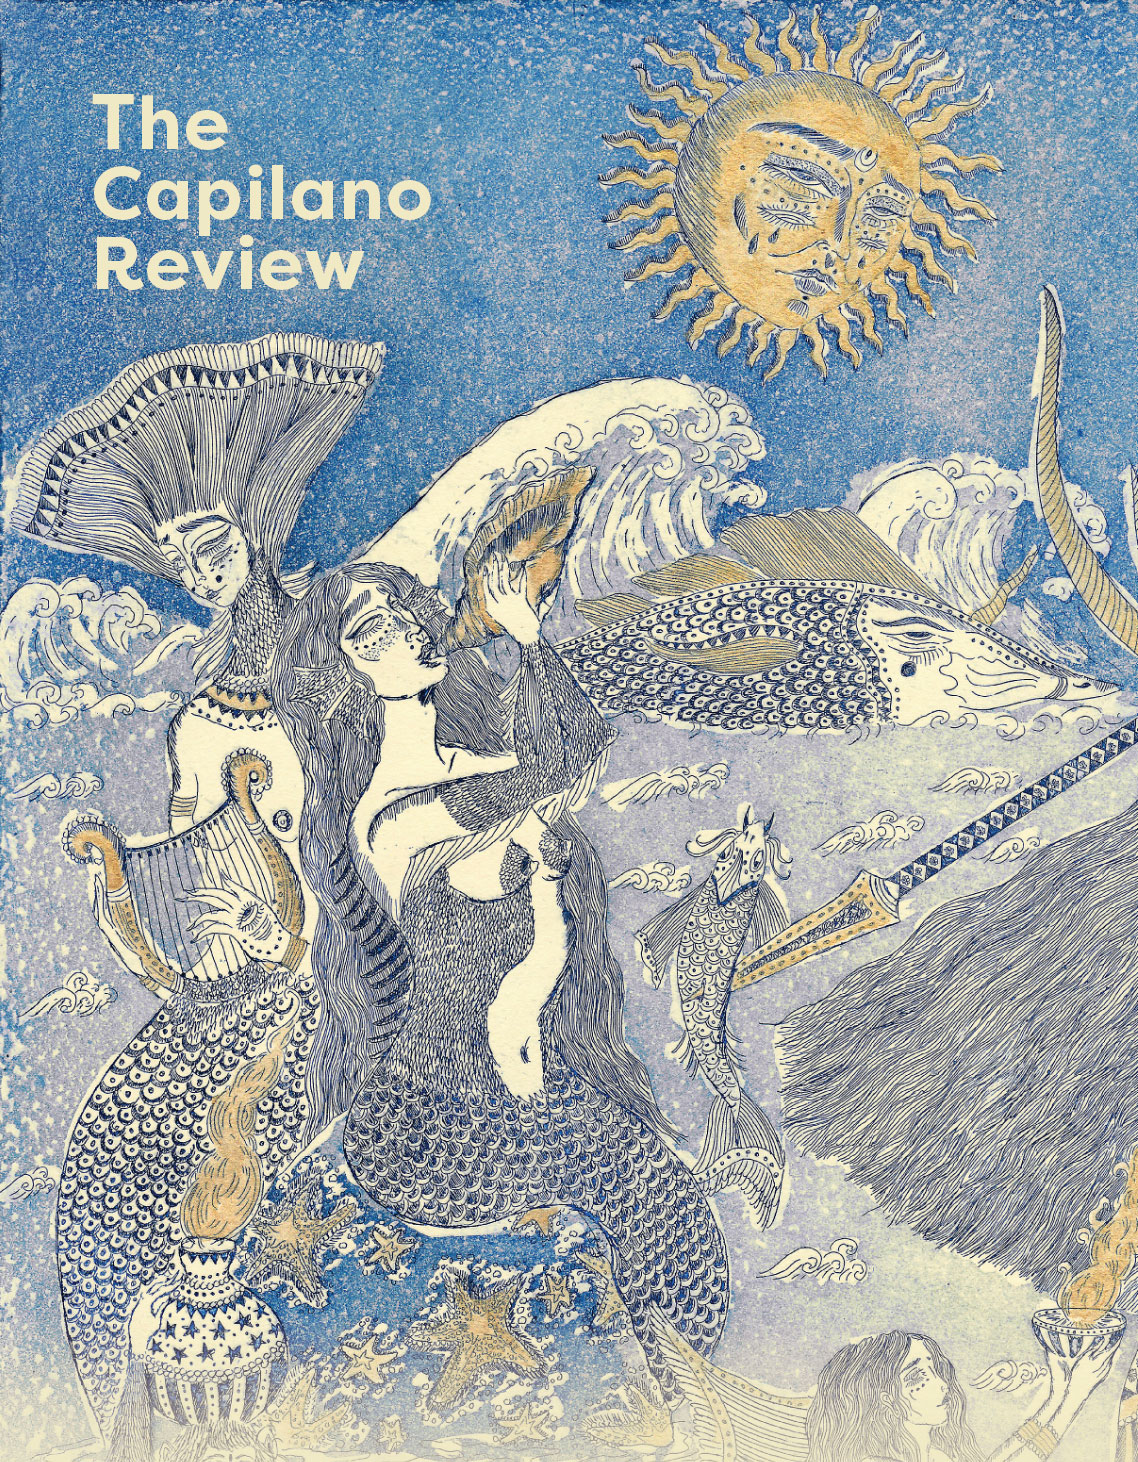 The Capilano Review 339 cover